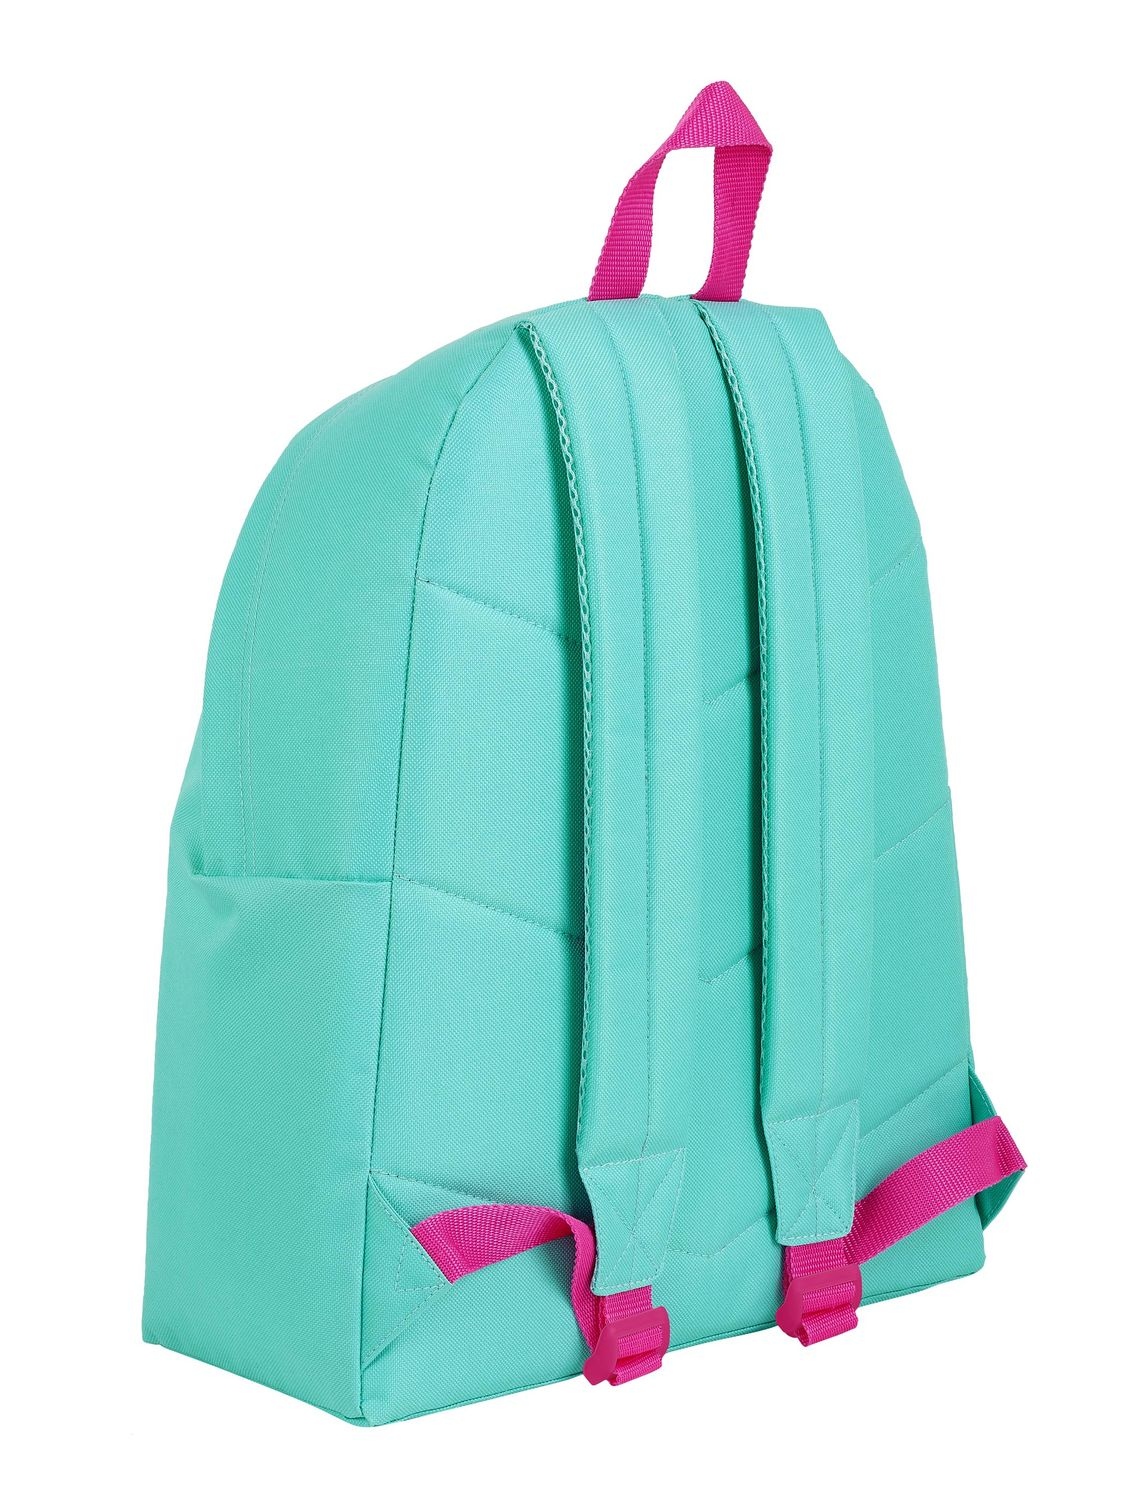 BENETTON GIRL Backpack 42 cm – image 2